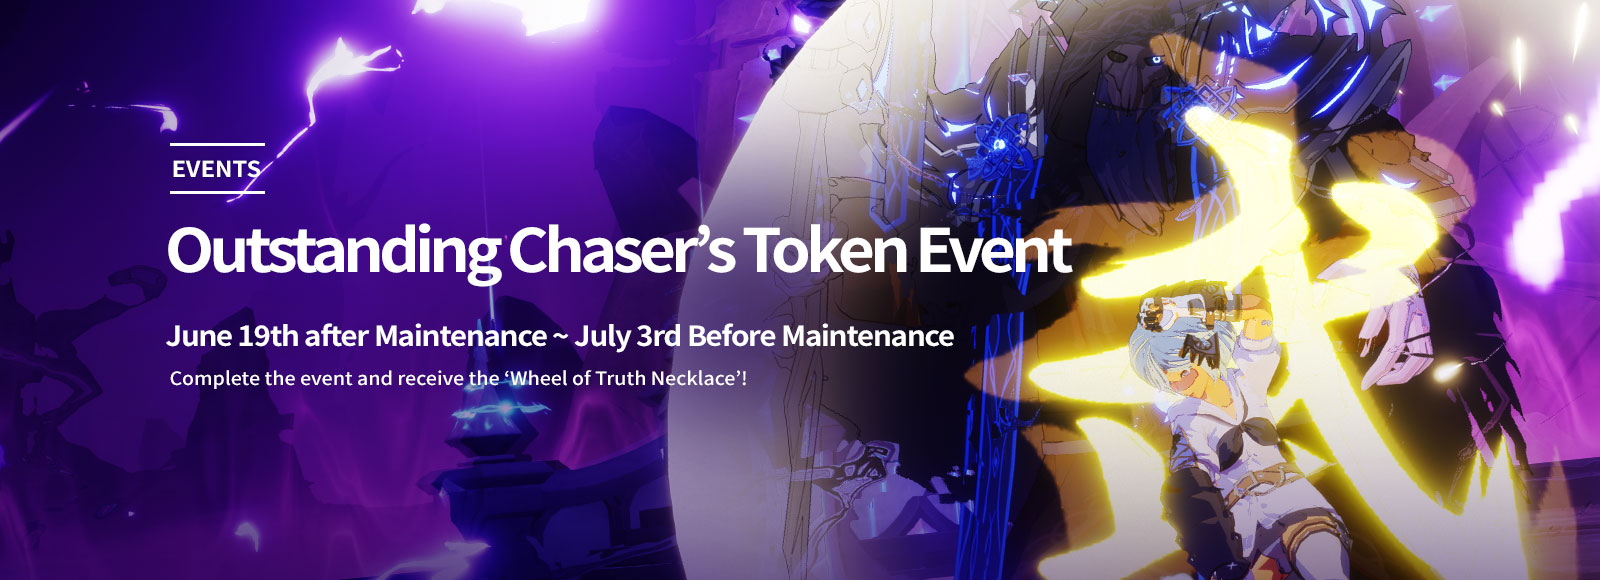 Outstanding Chaser's Token Event <br> (UTC+0 June 19th ~ July 2nd)